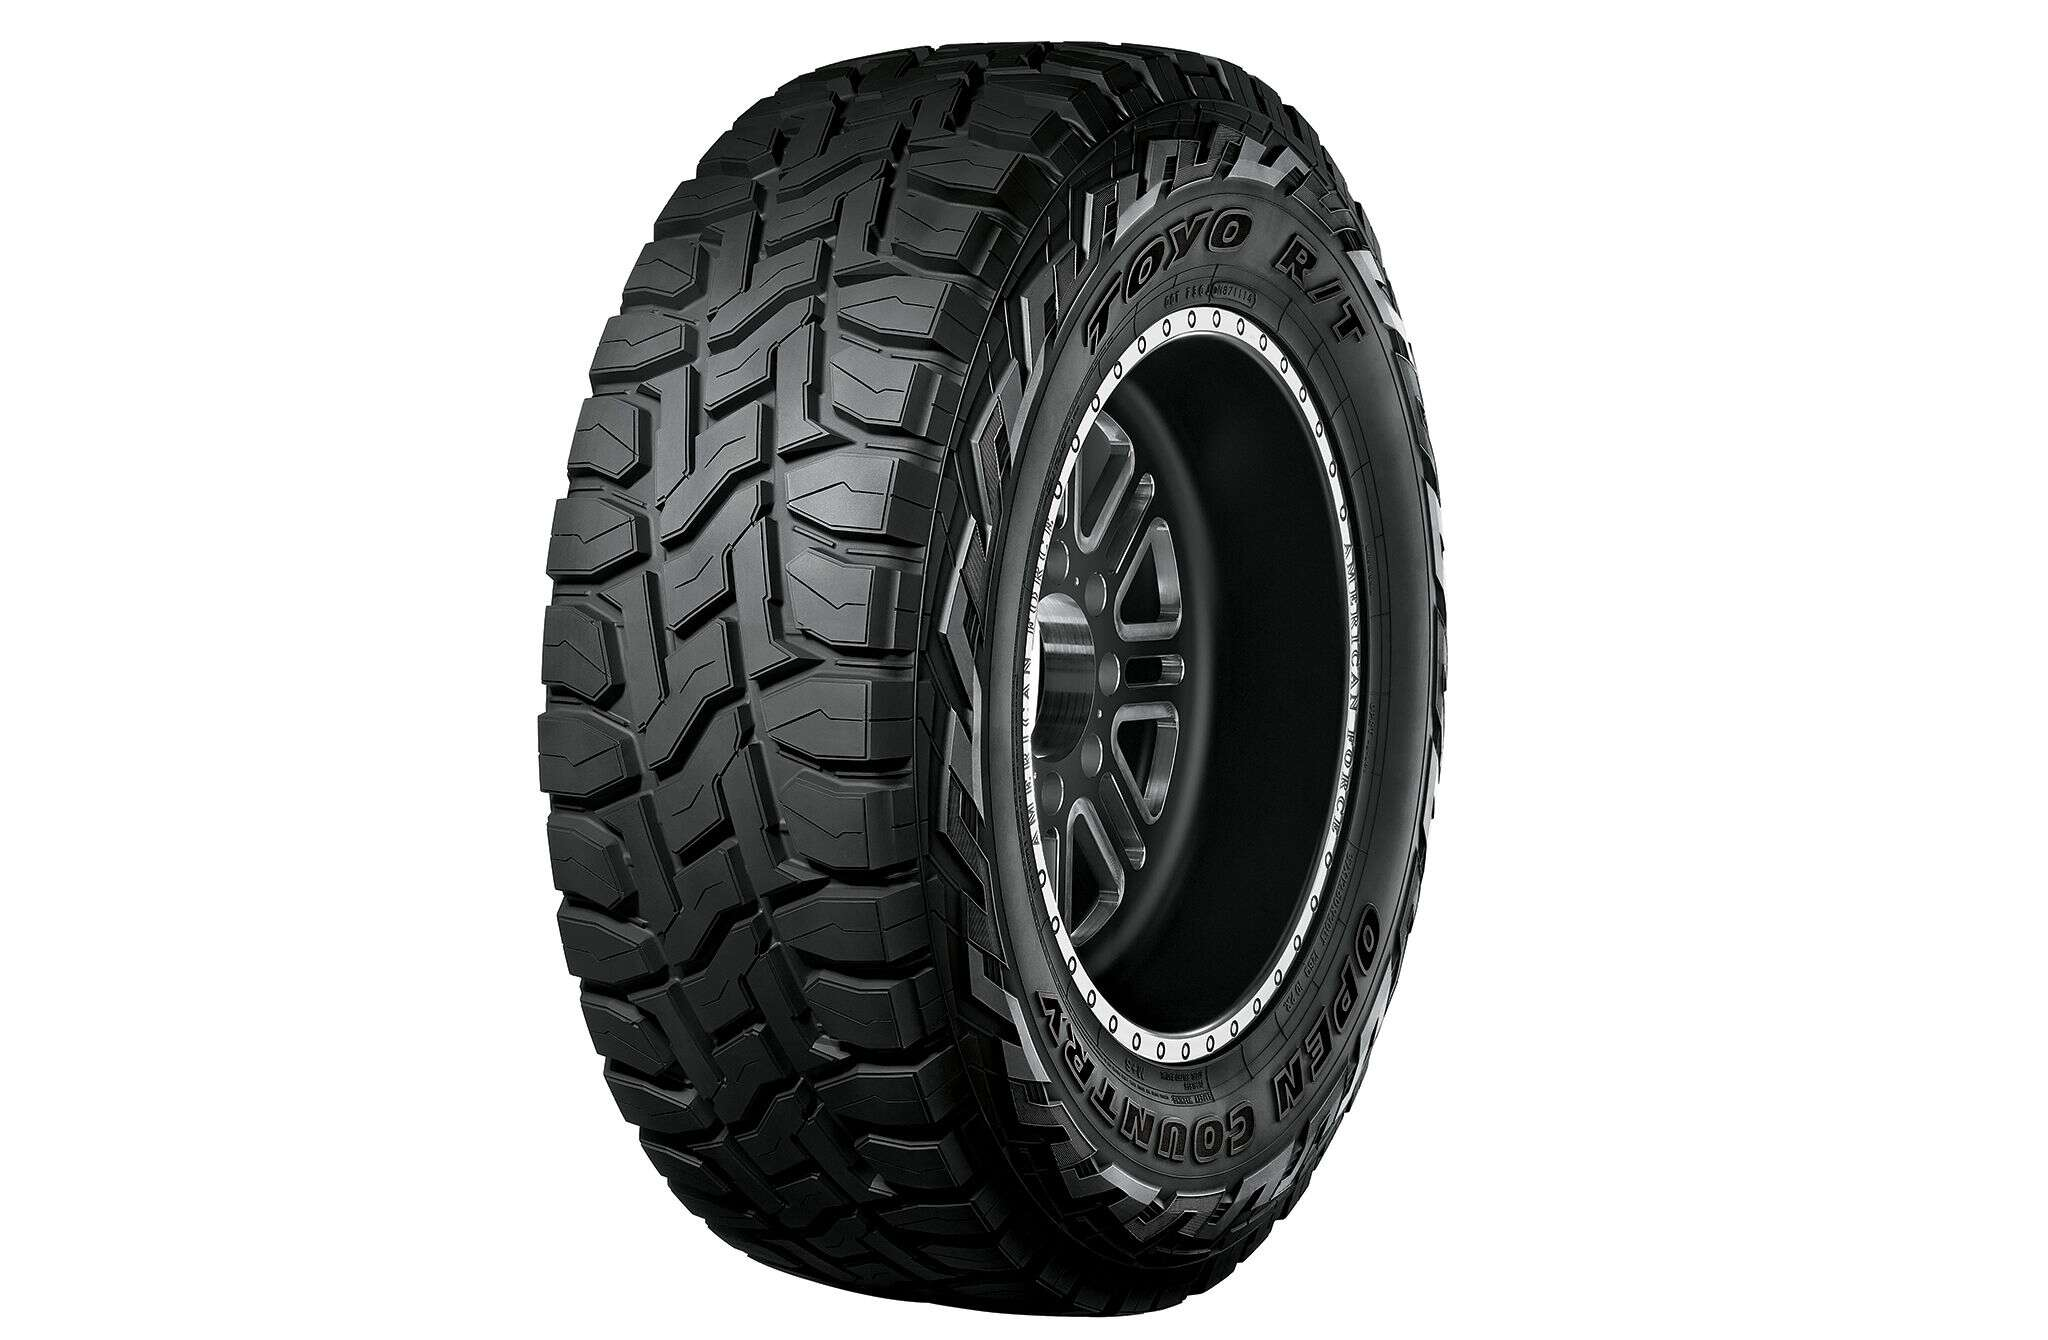 Town And Country Tire >> Toyo Open Country R/T 5,000 Mile Tire Review - The Drive